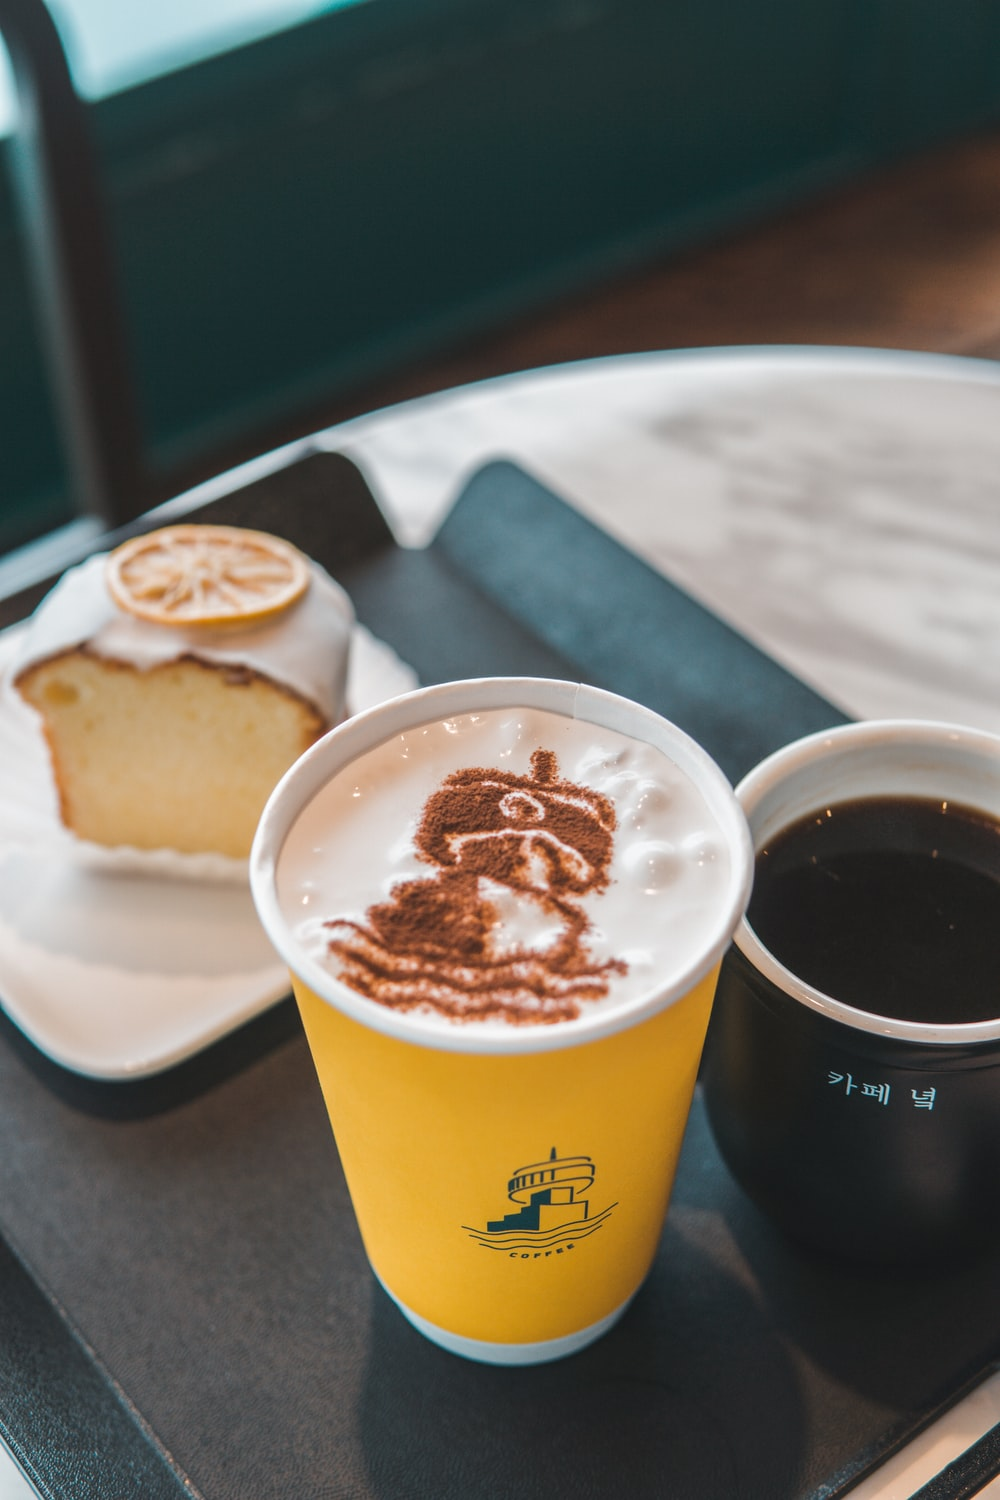 yellow and white disposable cup with coffee